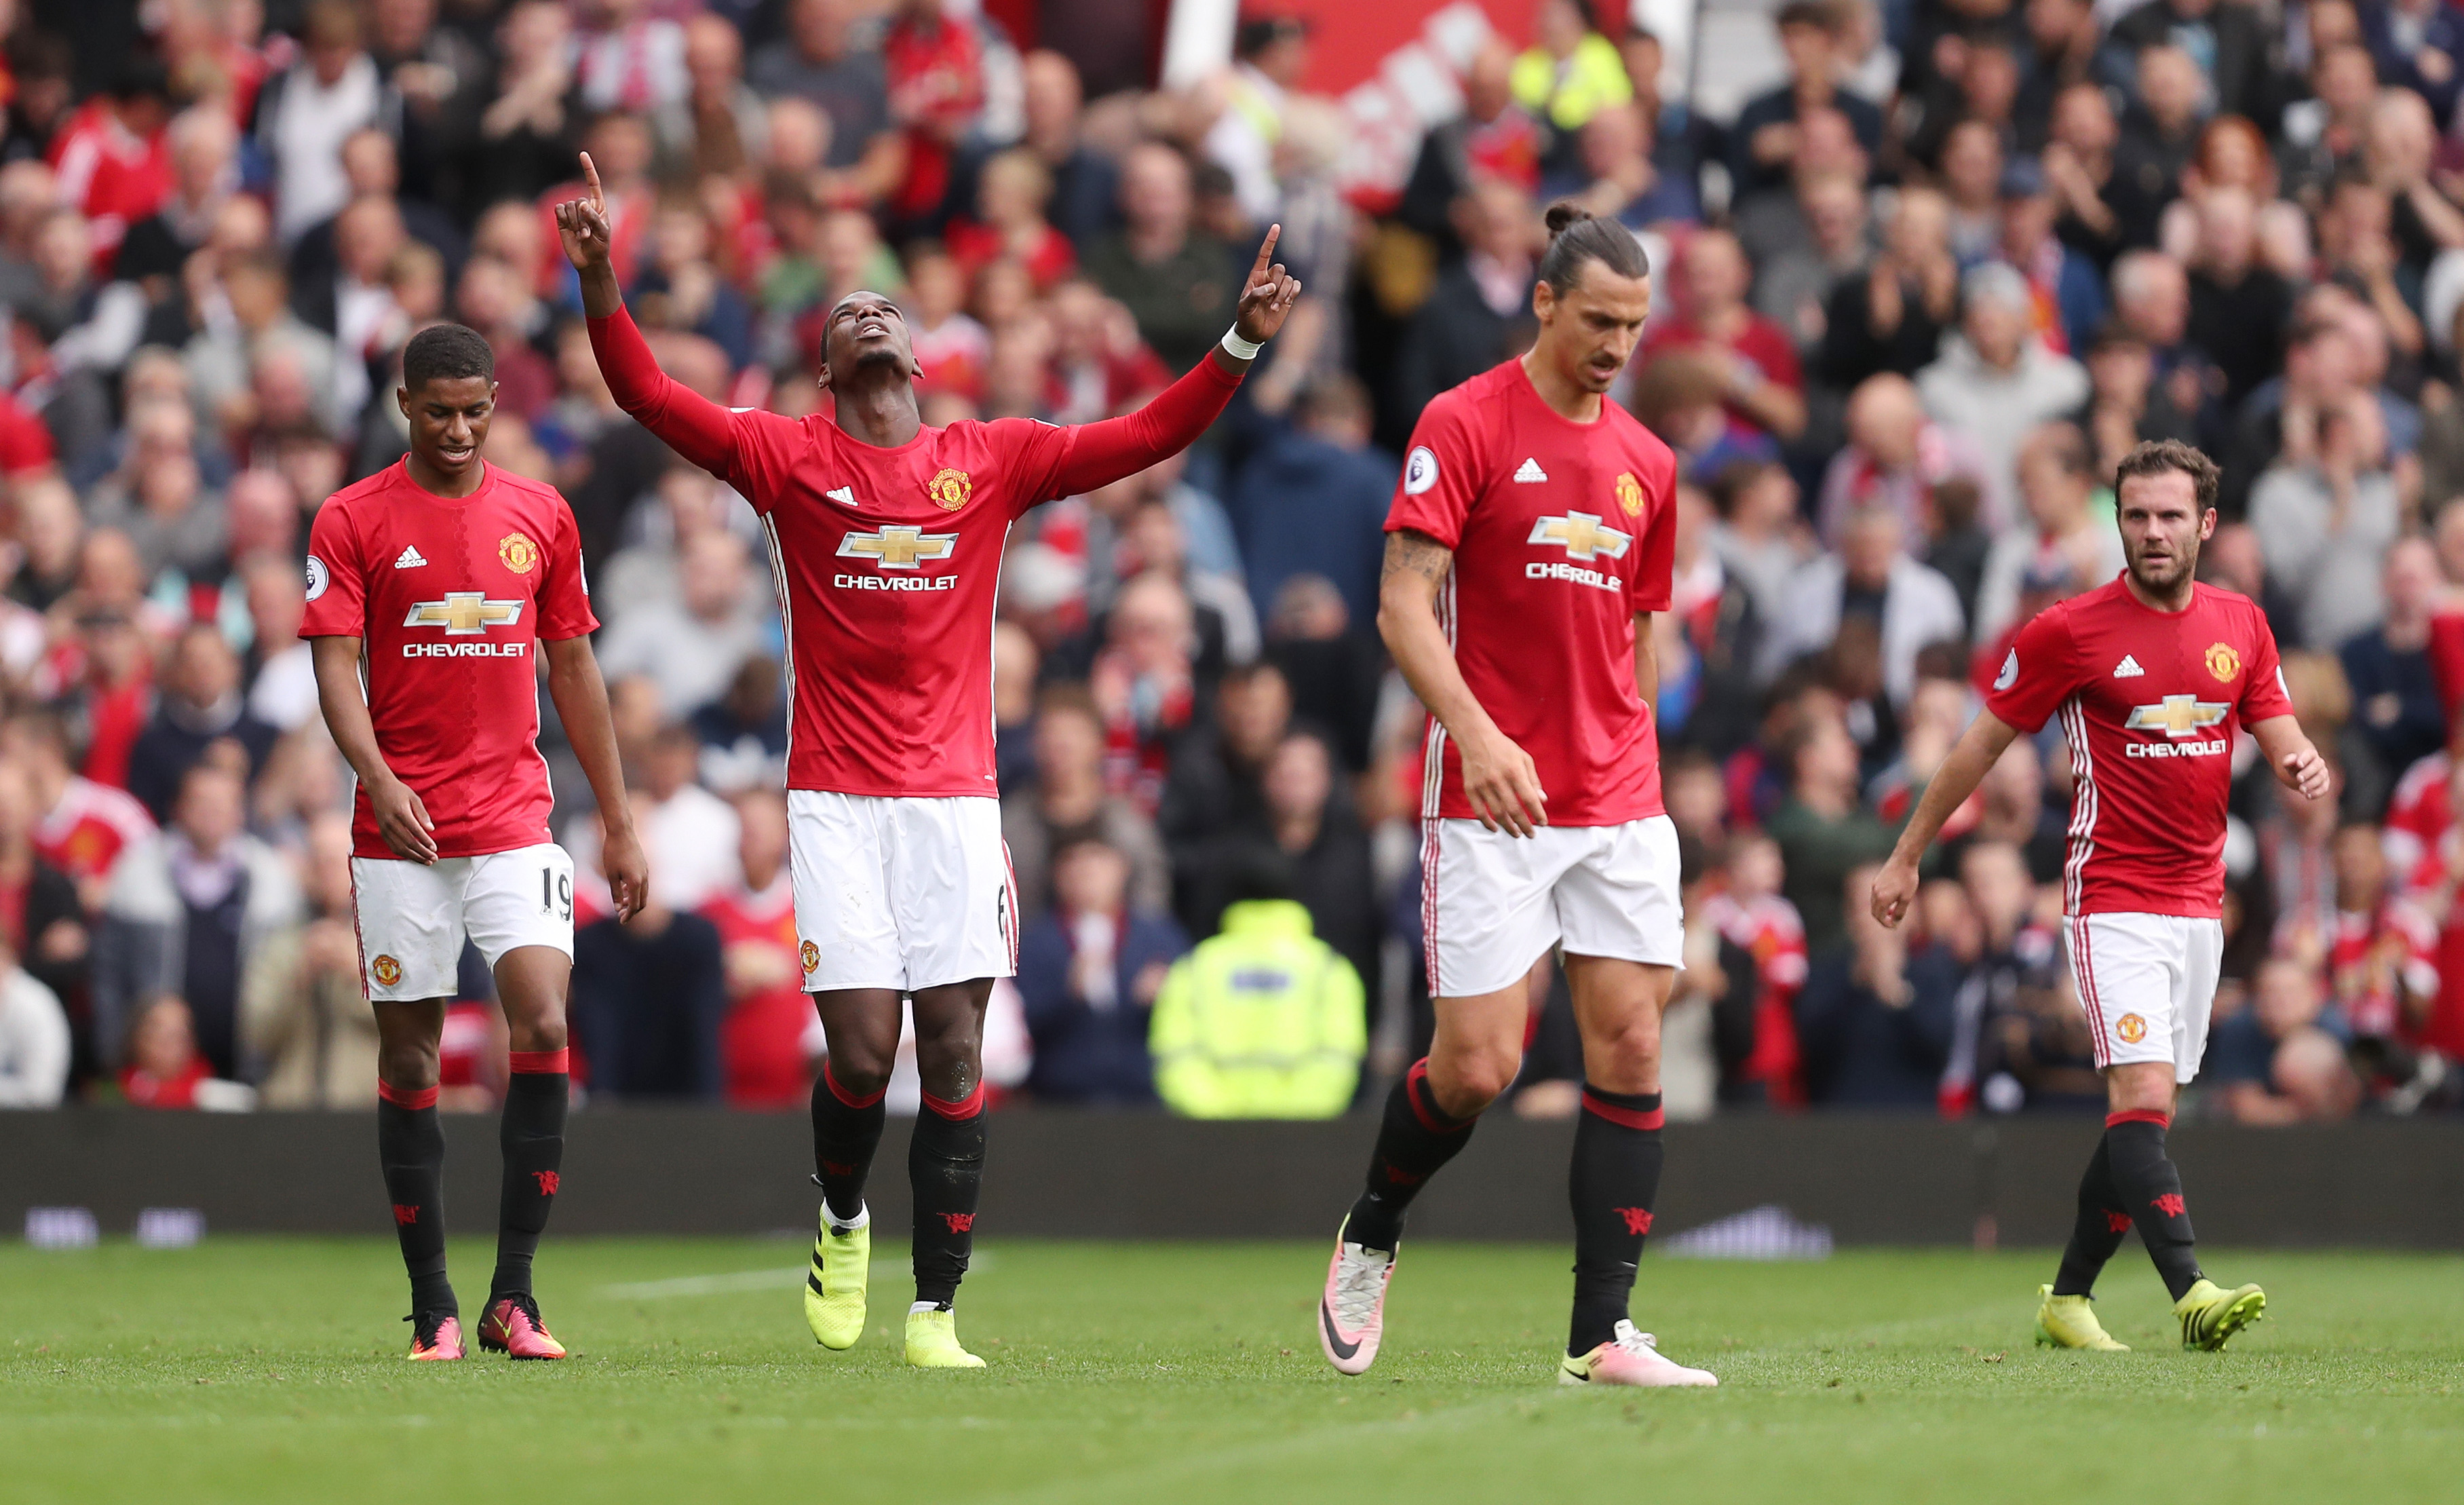 man united vs leicester city - photo #27